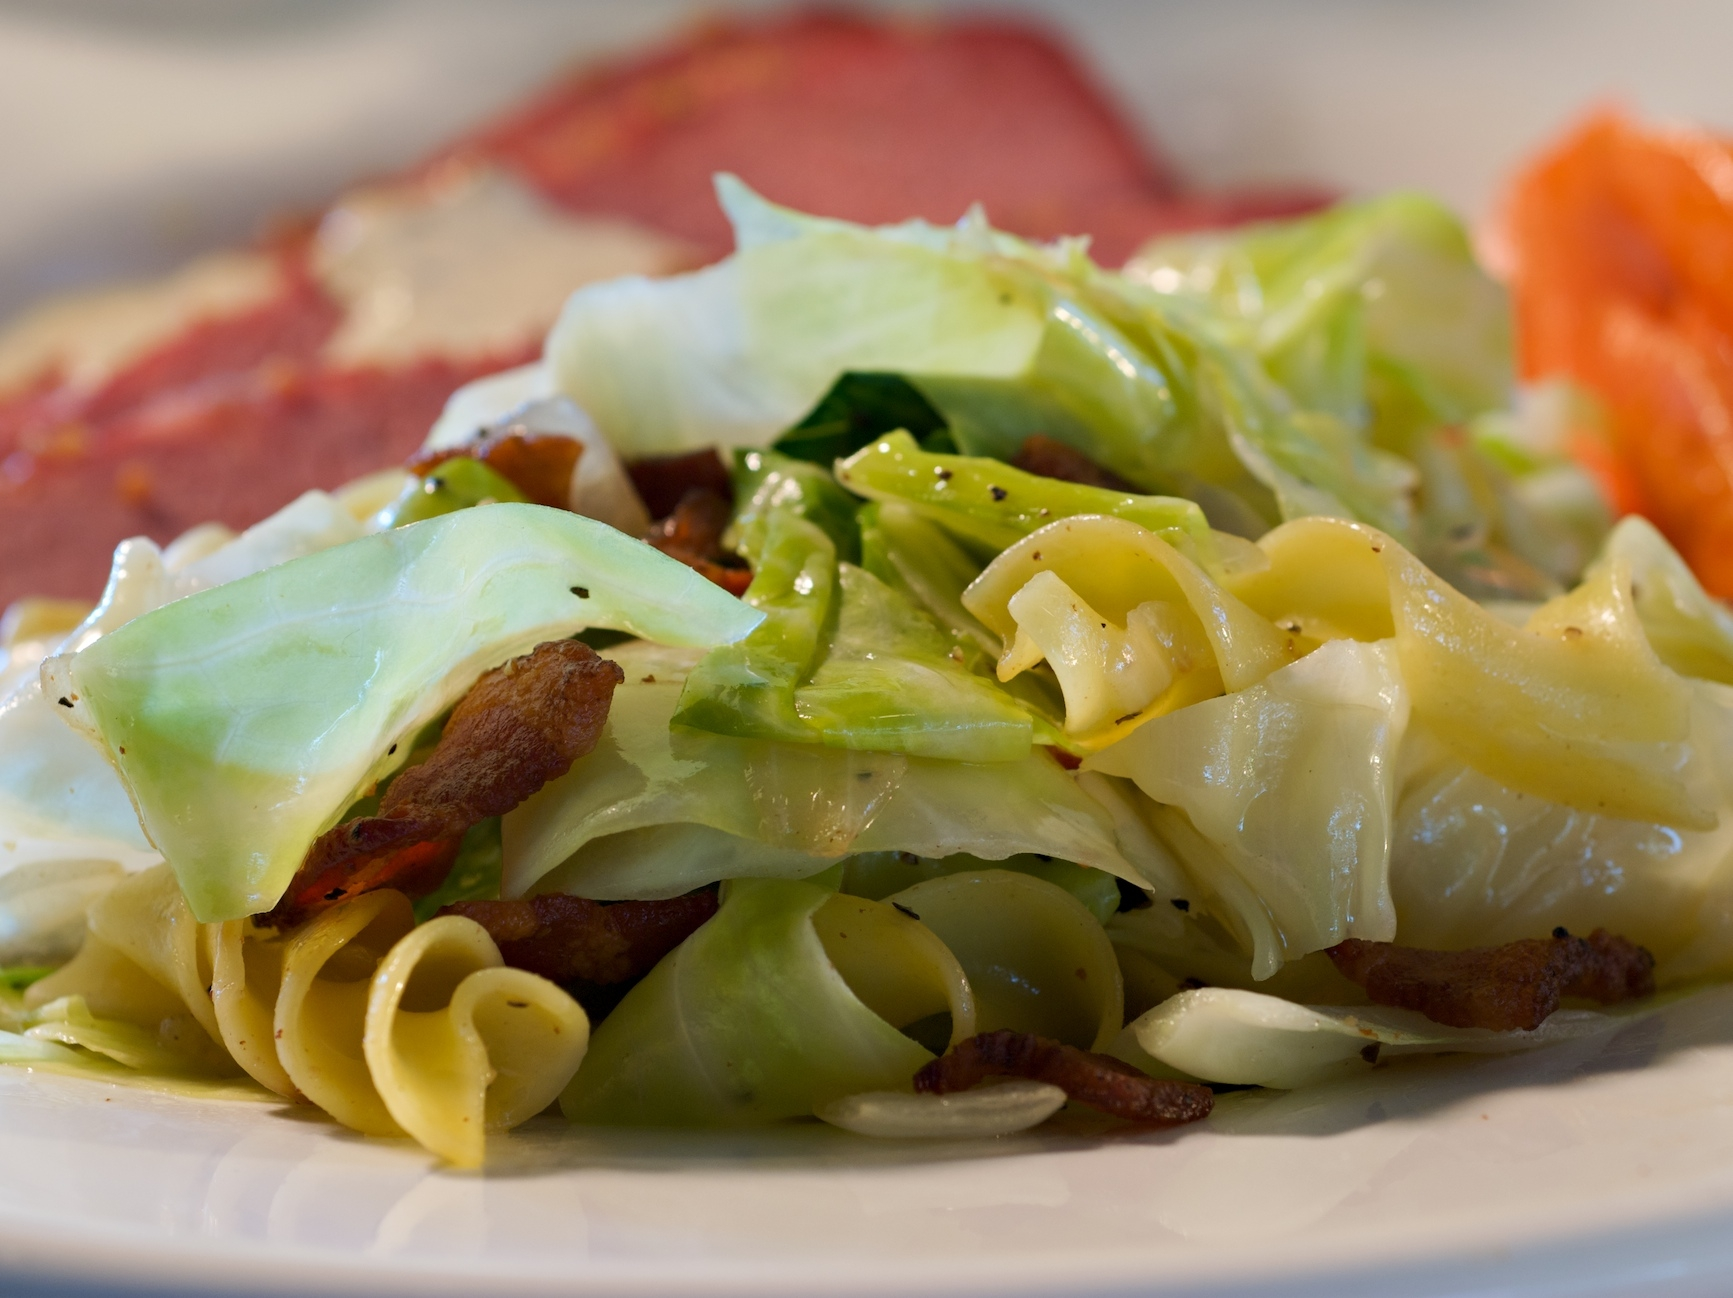 The total Irish comfort food! Smoky bacon, the crunch of green cabbage, and tender noodles make this dish completely mouthwatering and craveable.